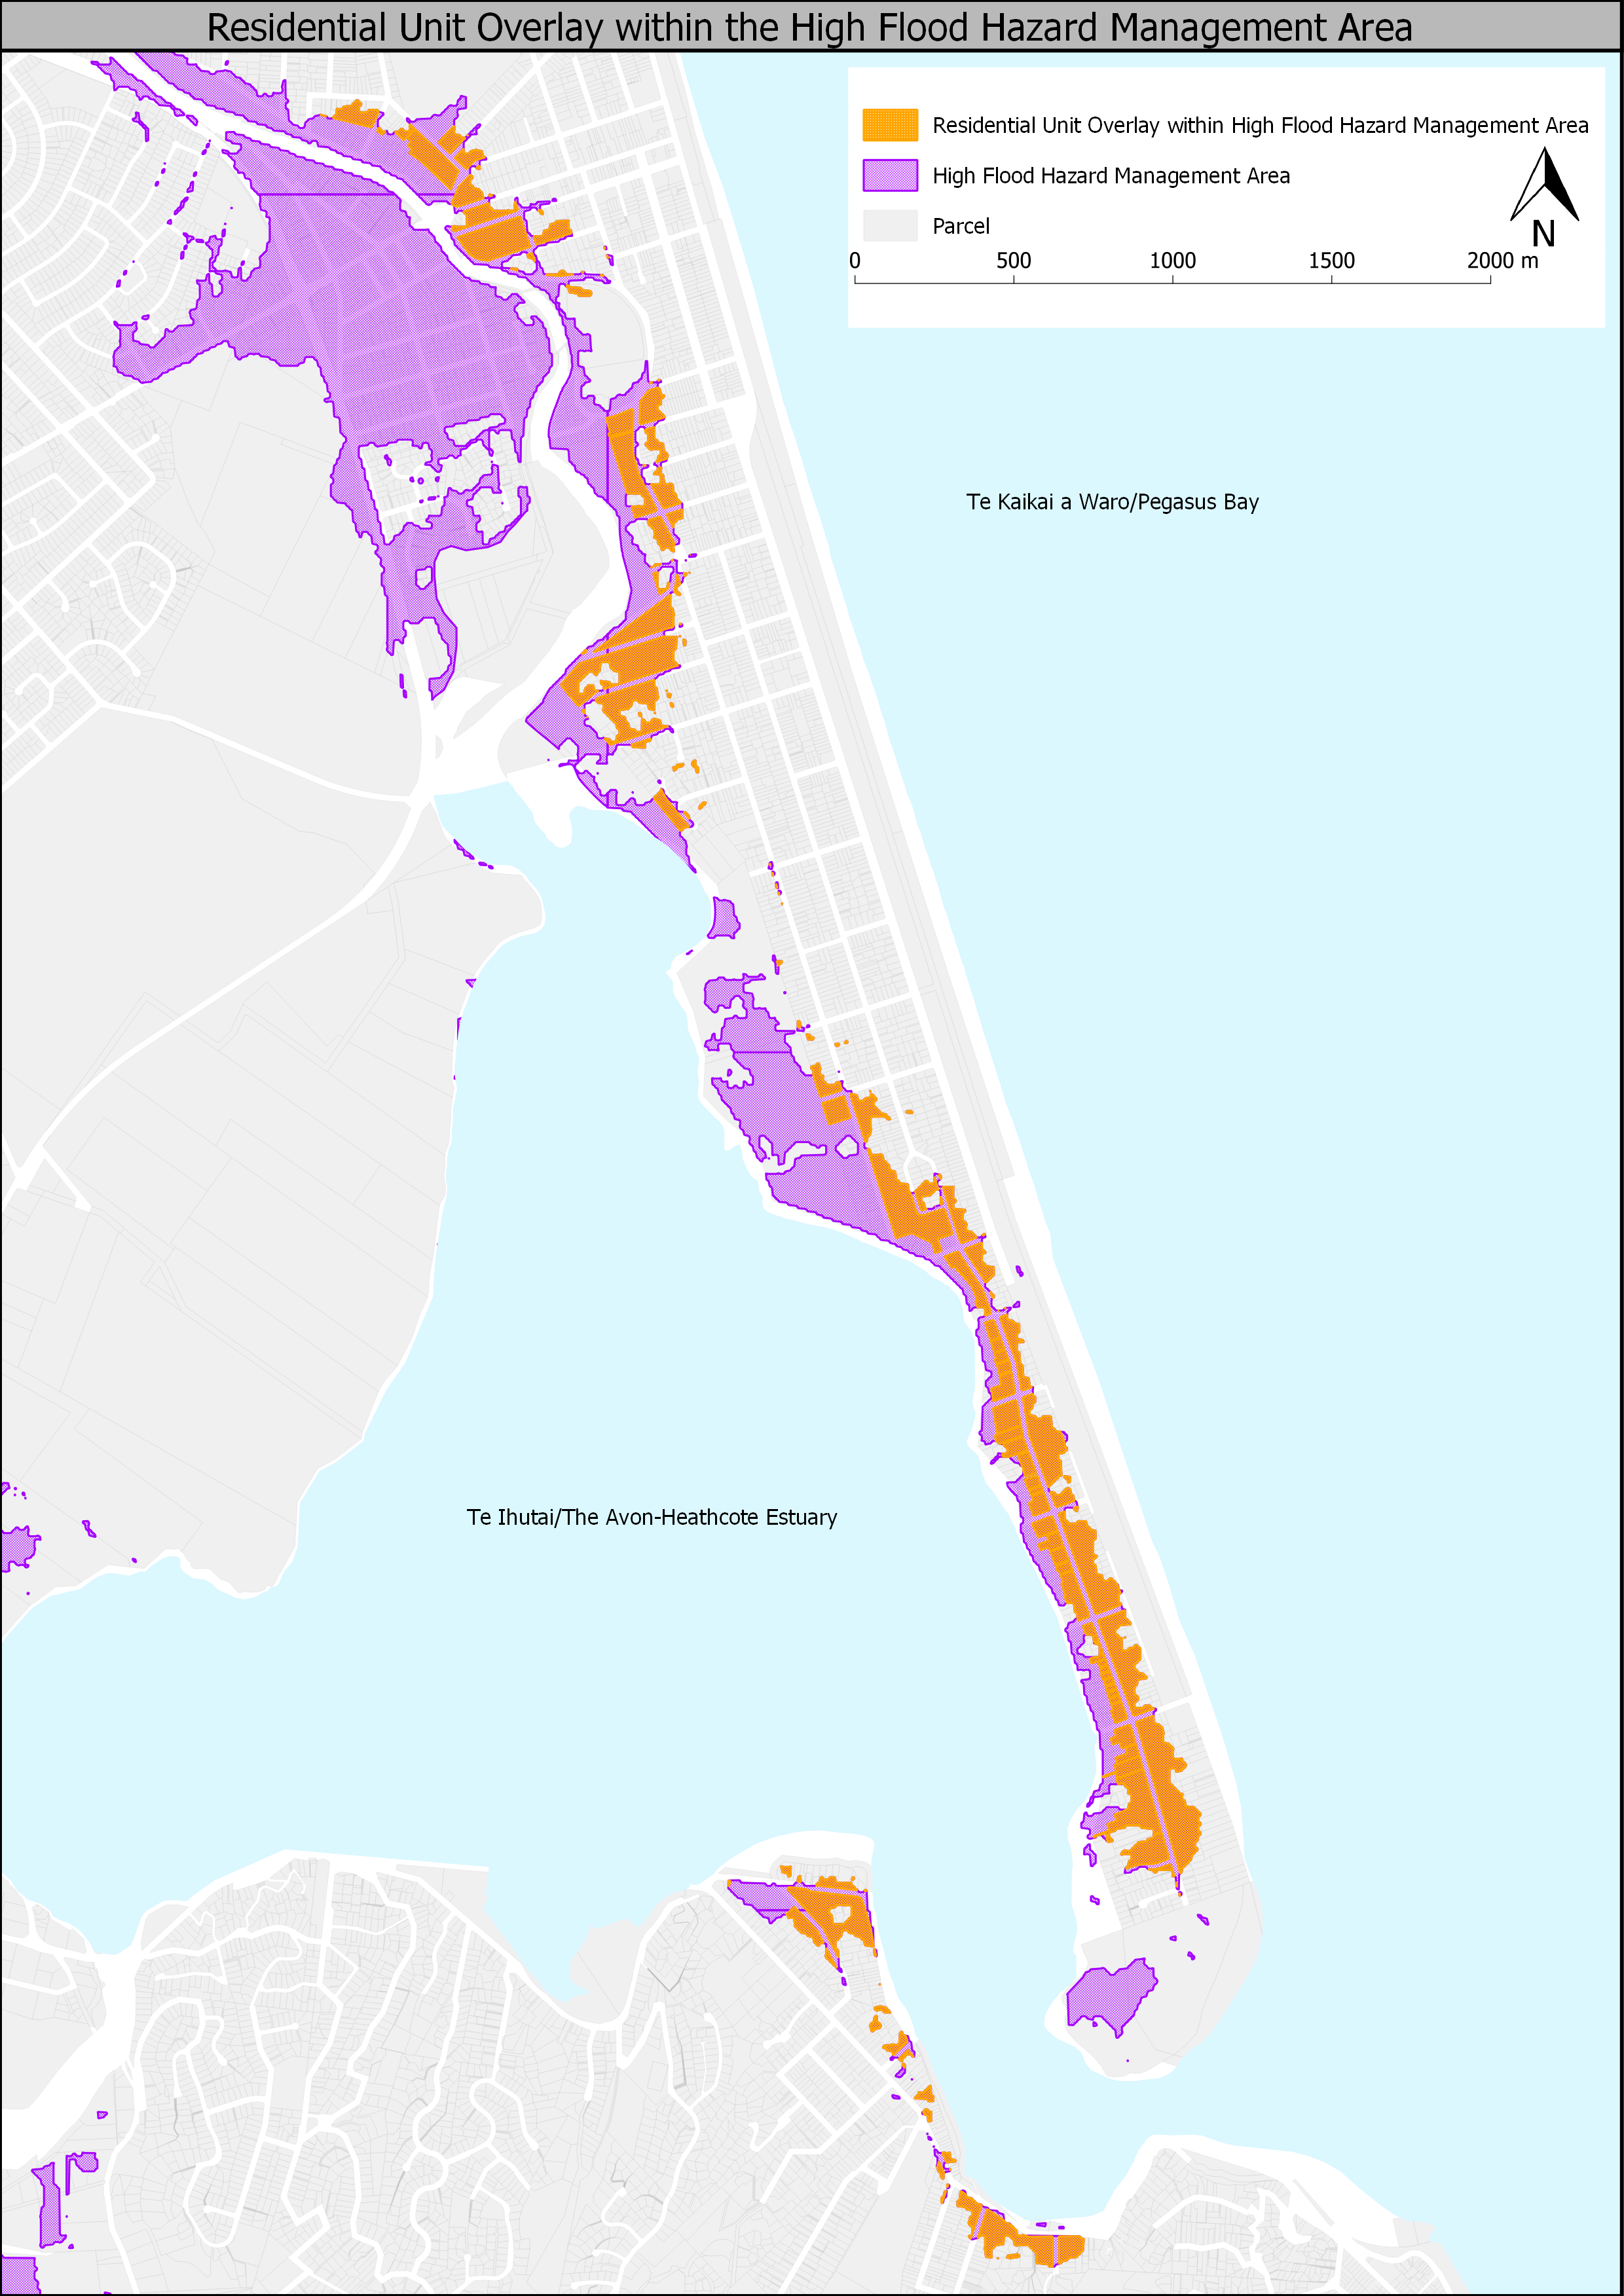 Residential Unit Overlay within the High Flood Hazard Management Area